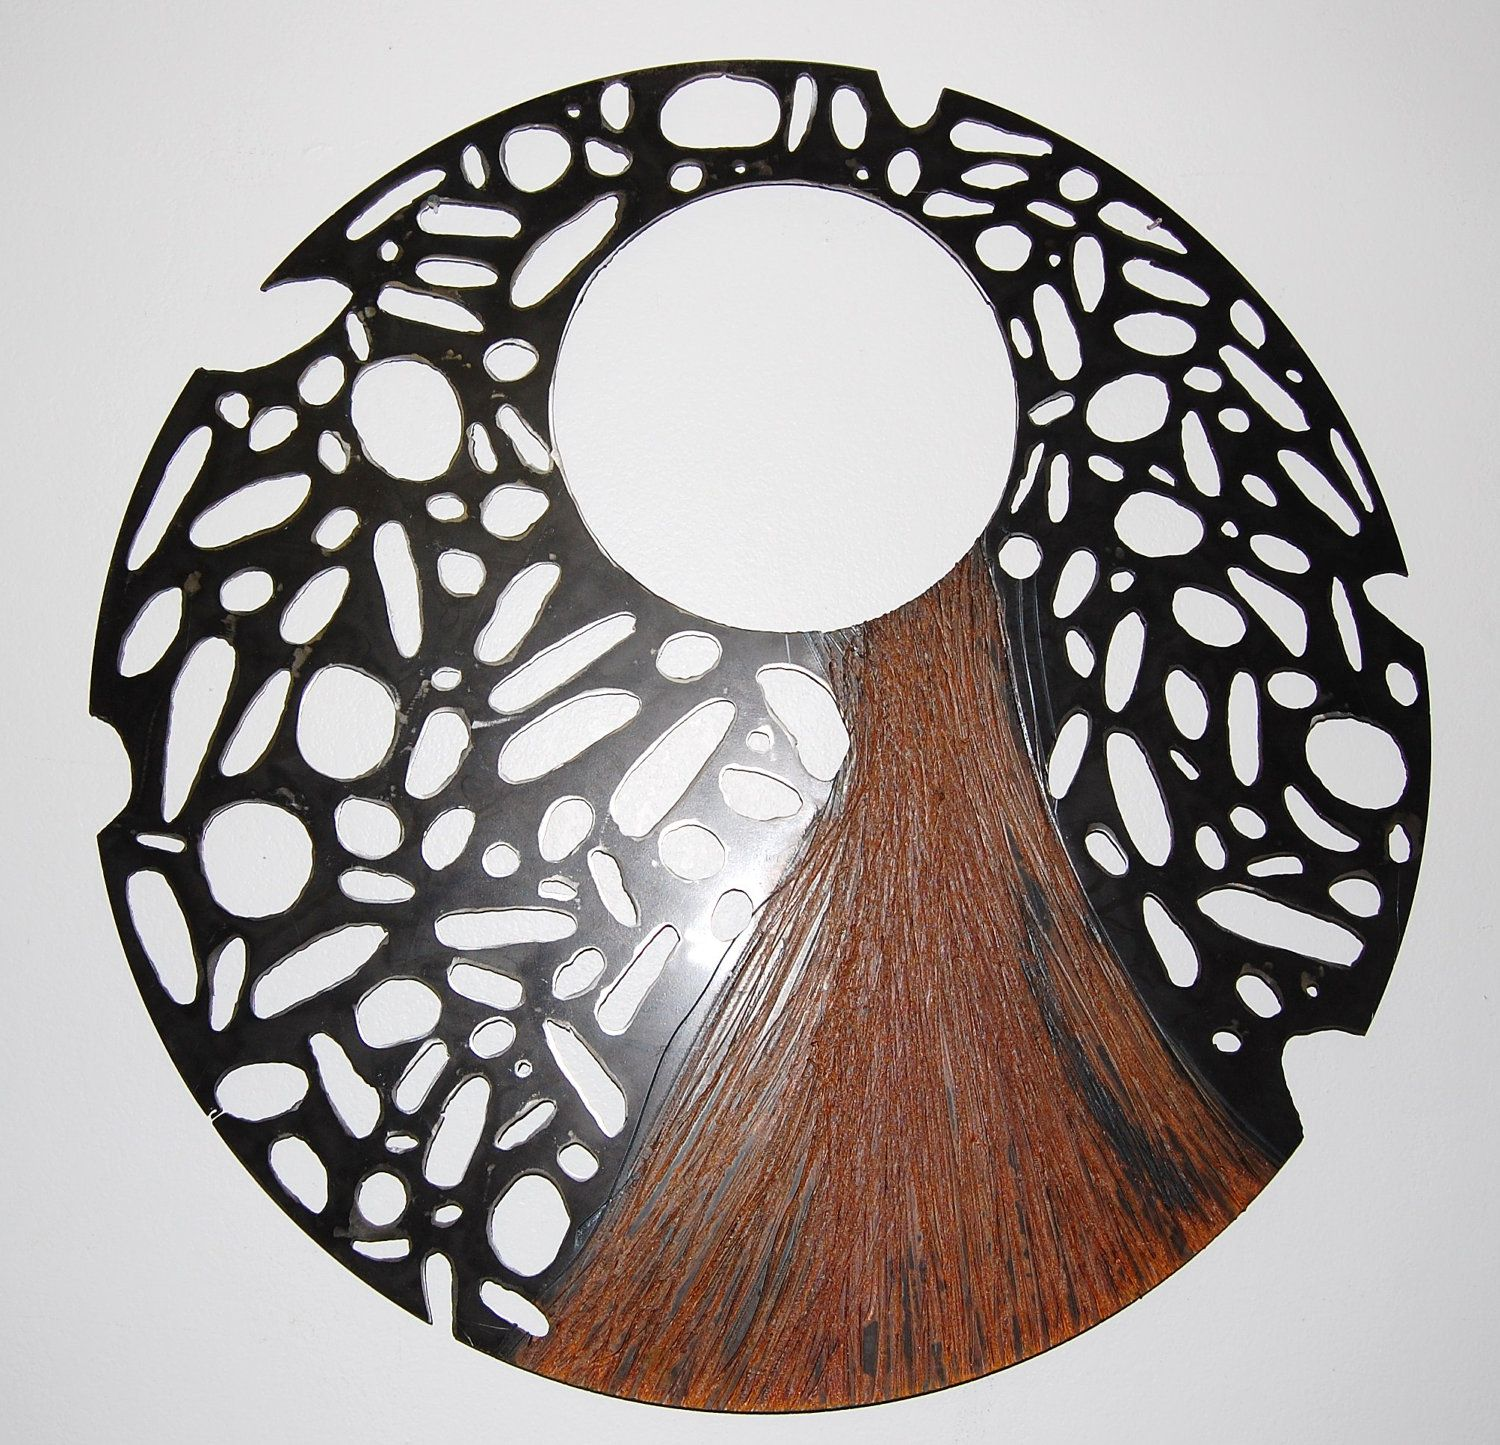 Large steel sculpturerecycled metal wall art round perforated